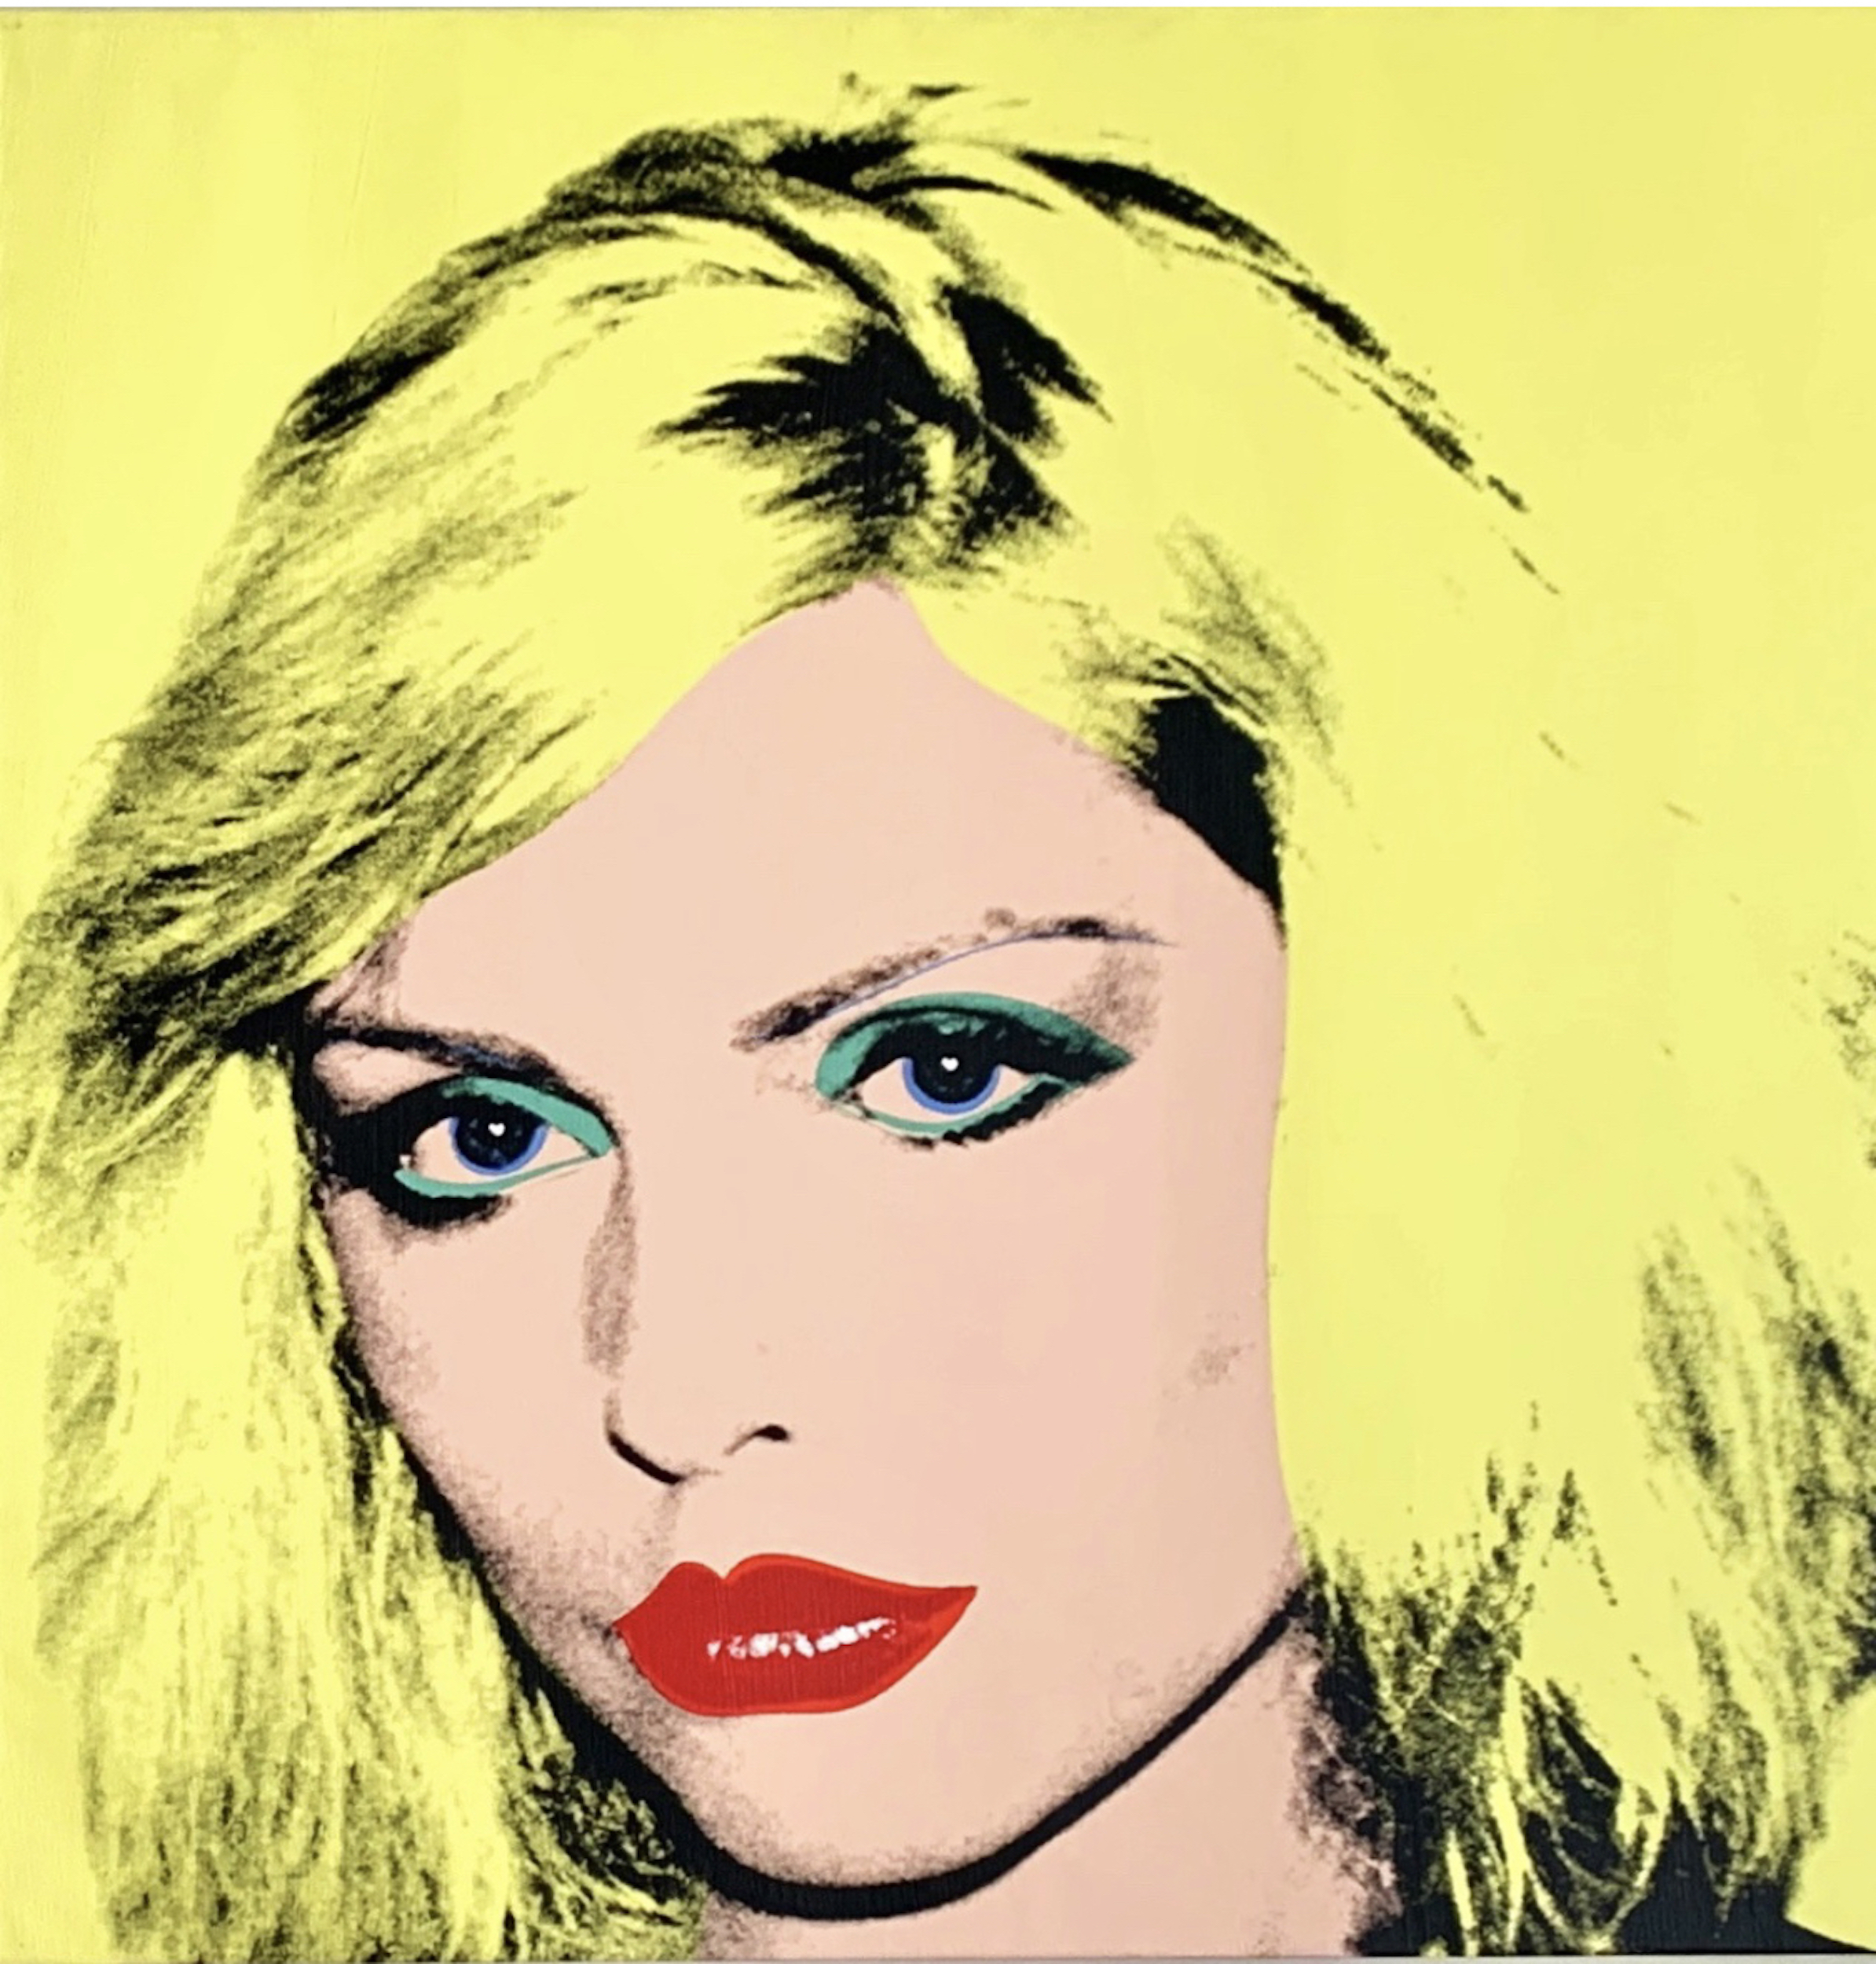 Warhol's return to Tate Modern